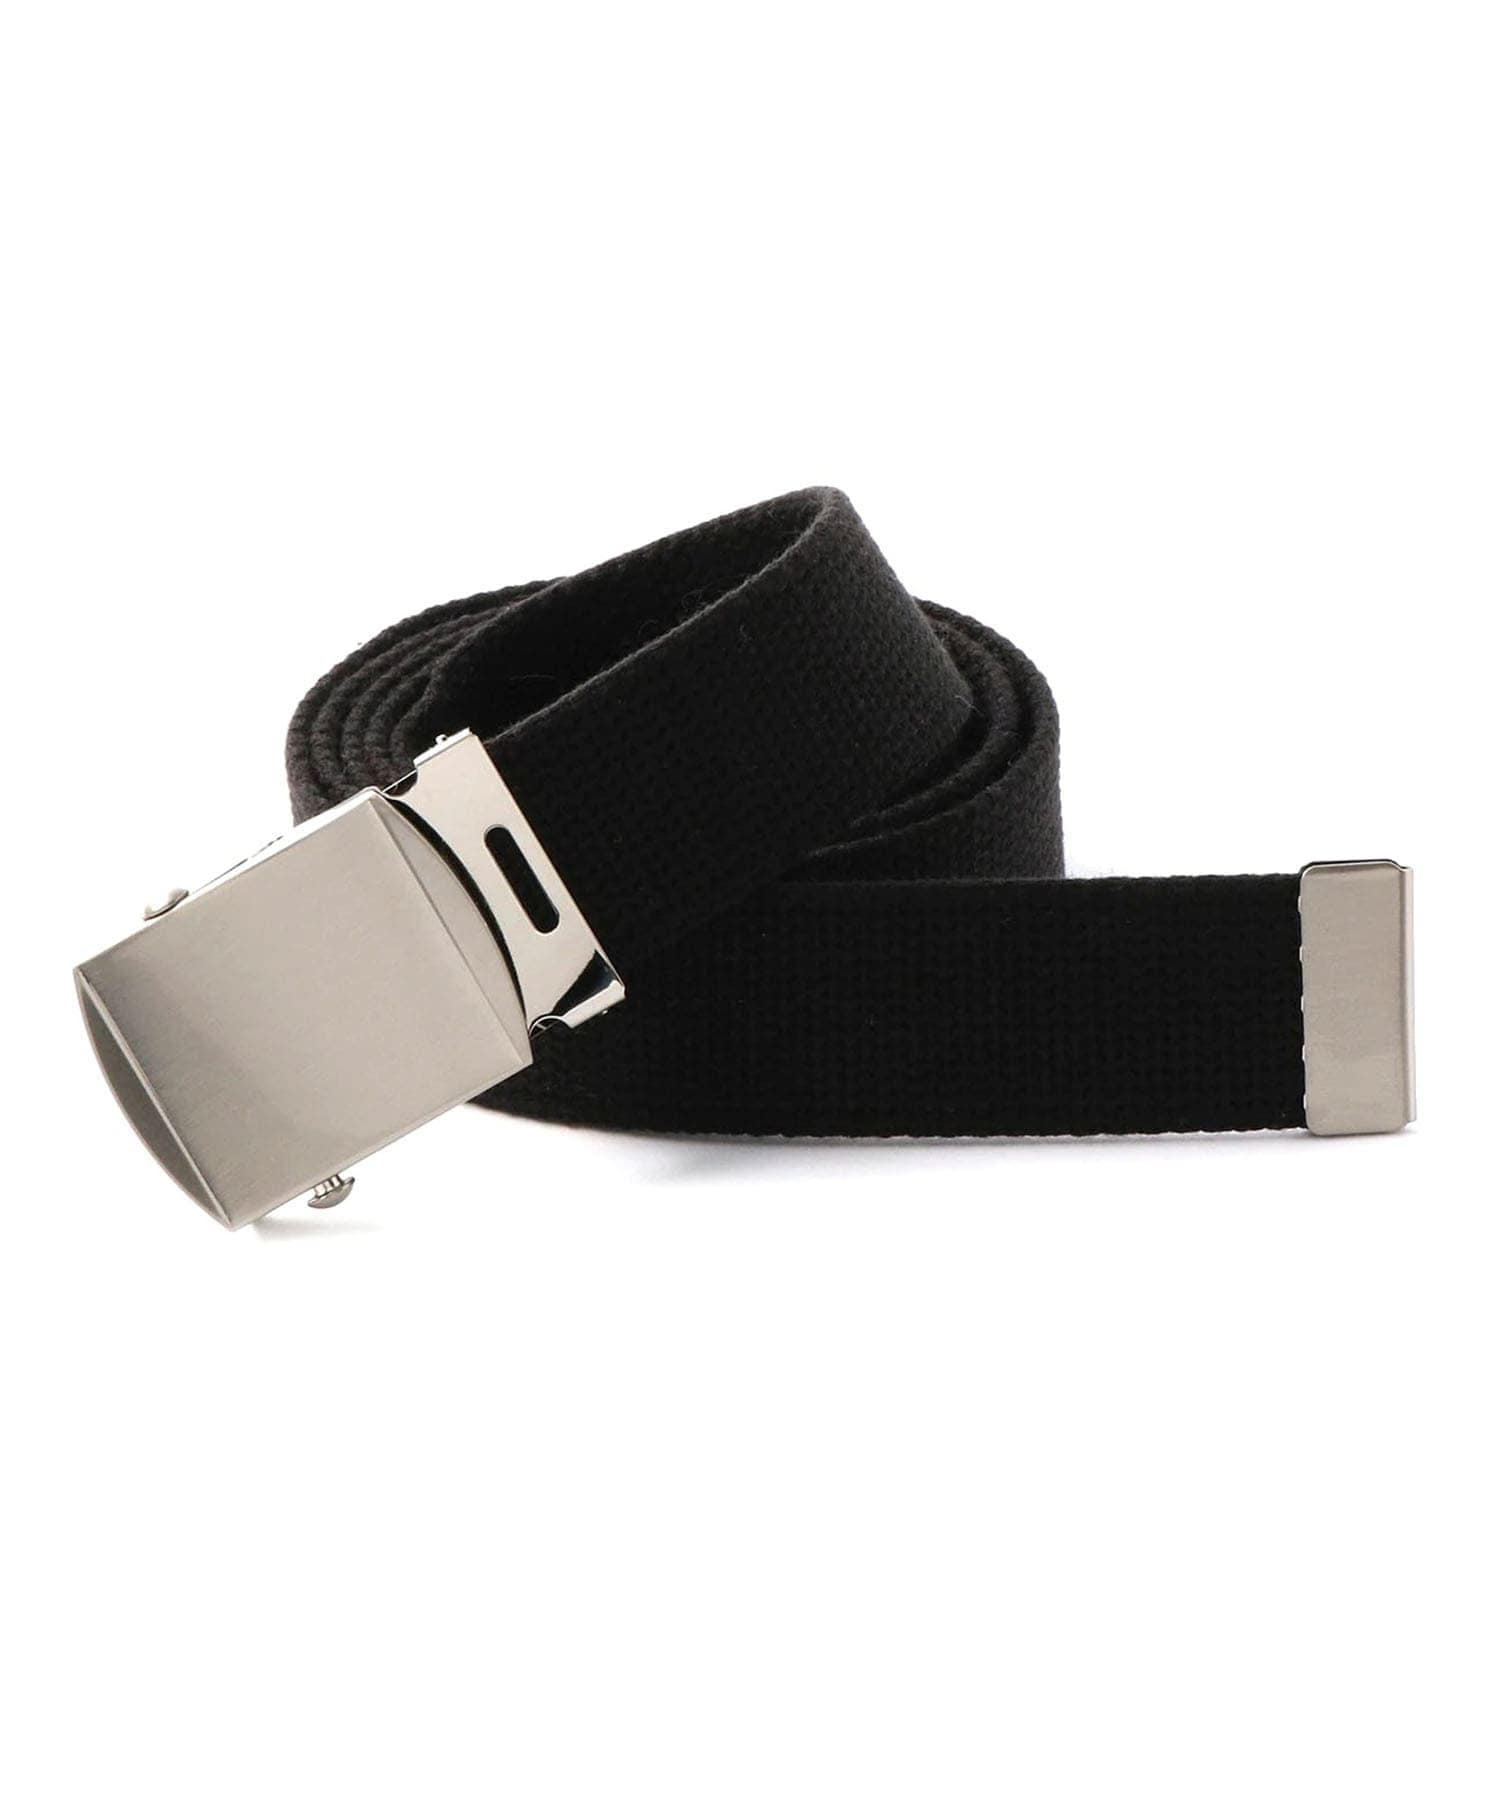 GROUND Y CANVAS BELT GroundY